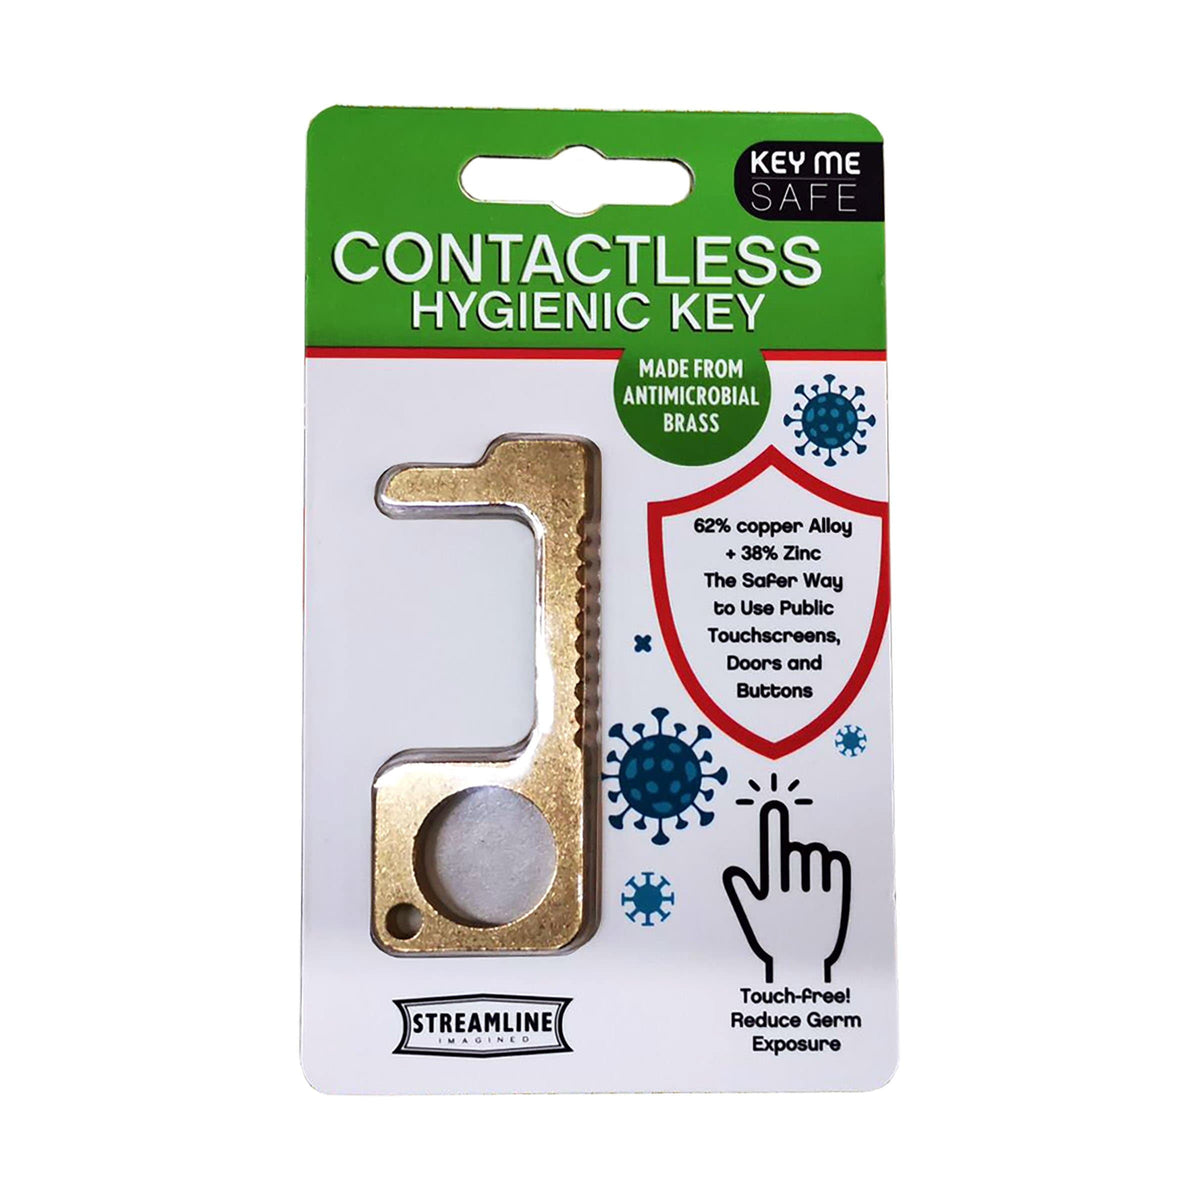 Key Me Safe Contactless Hygienic Key